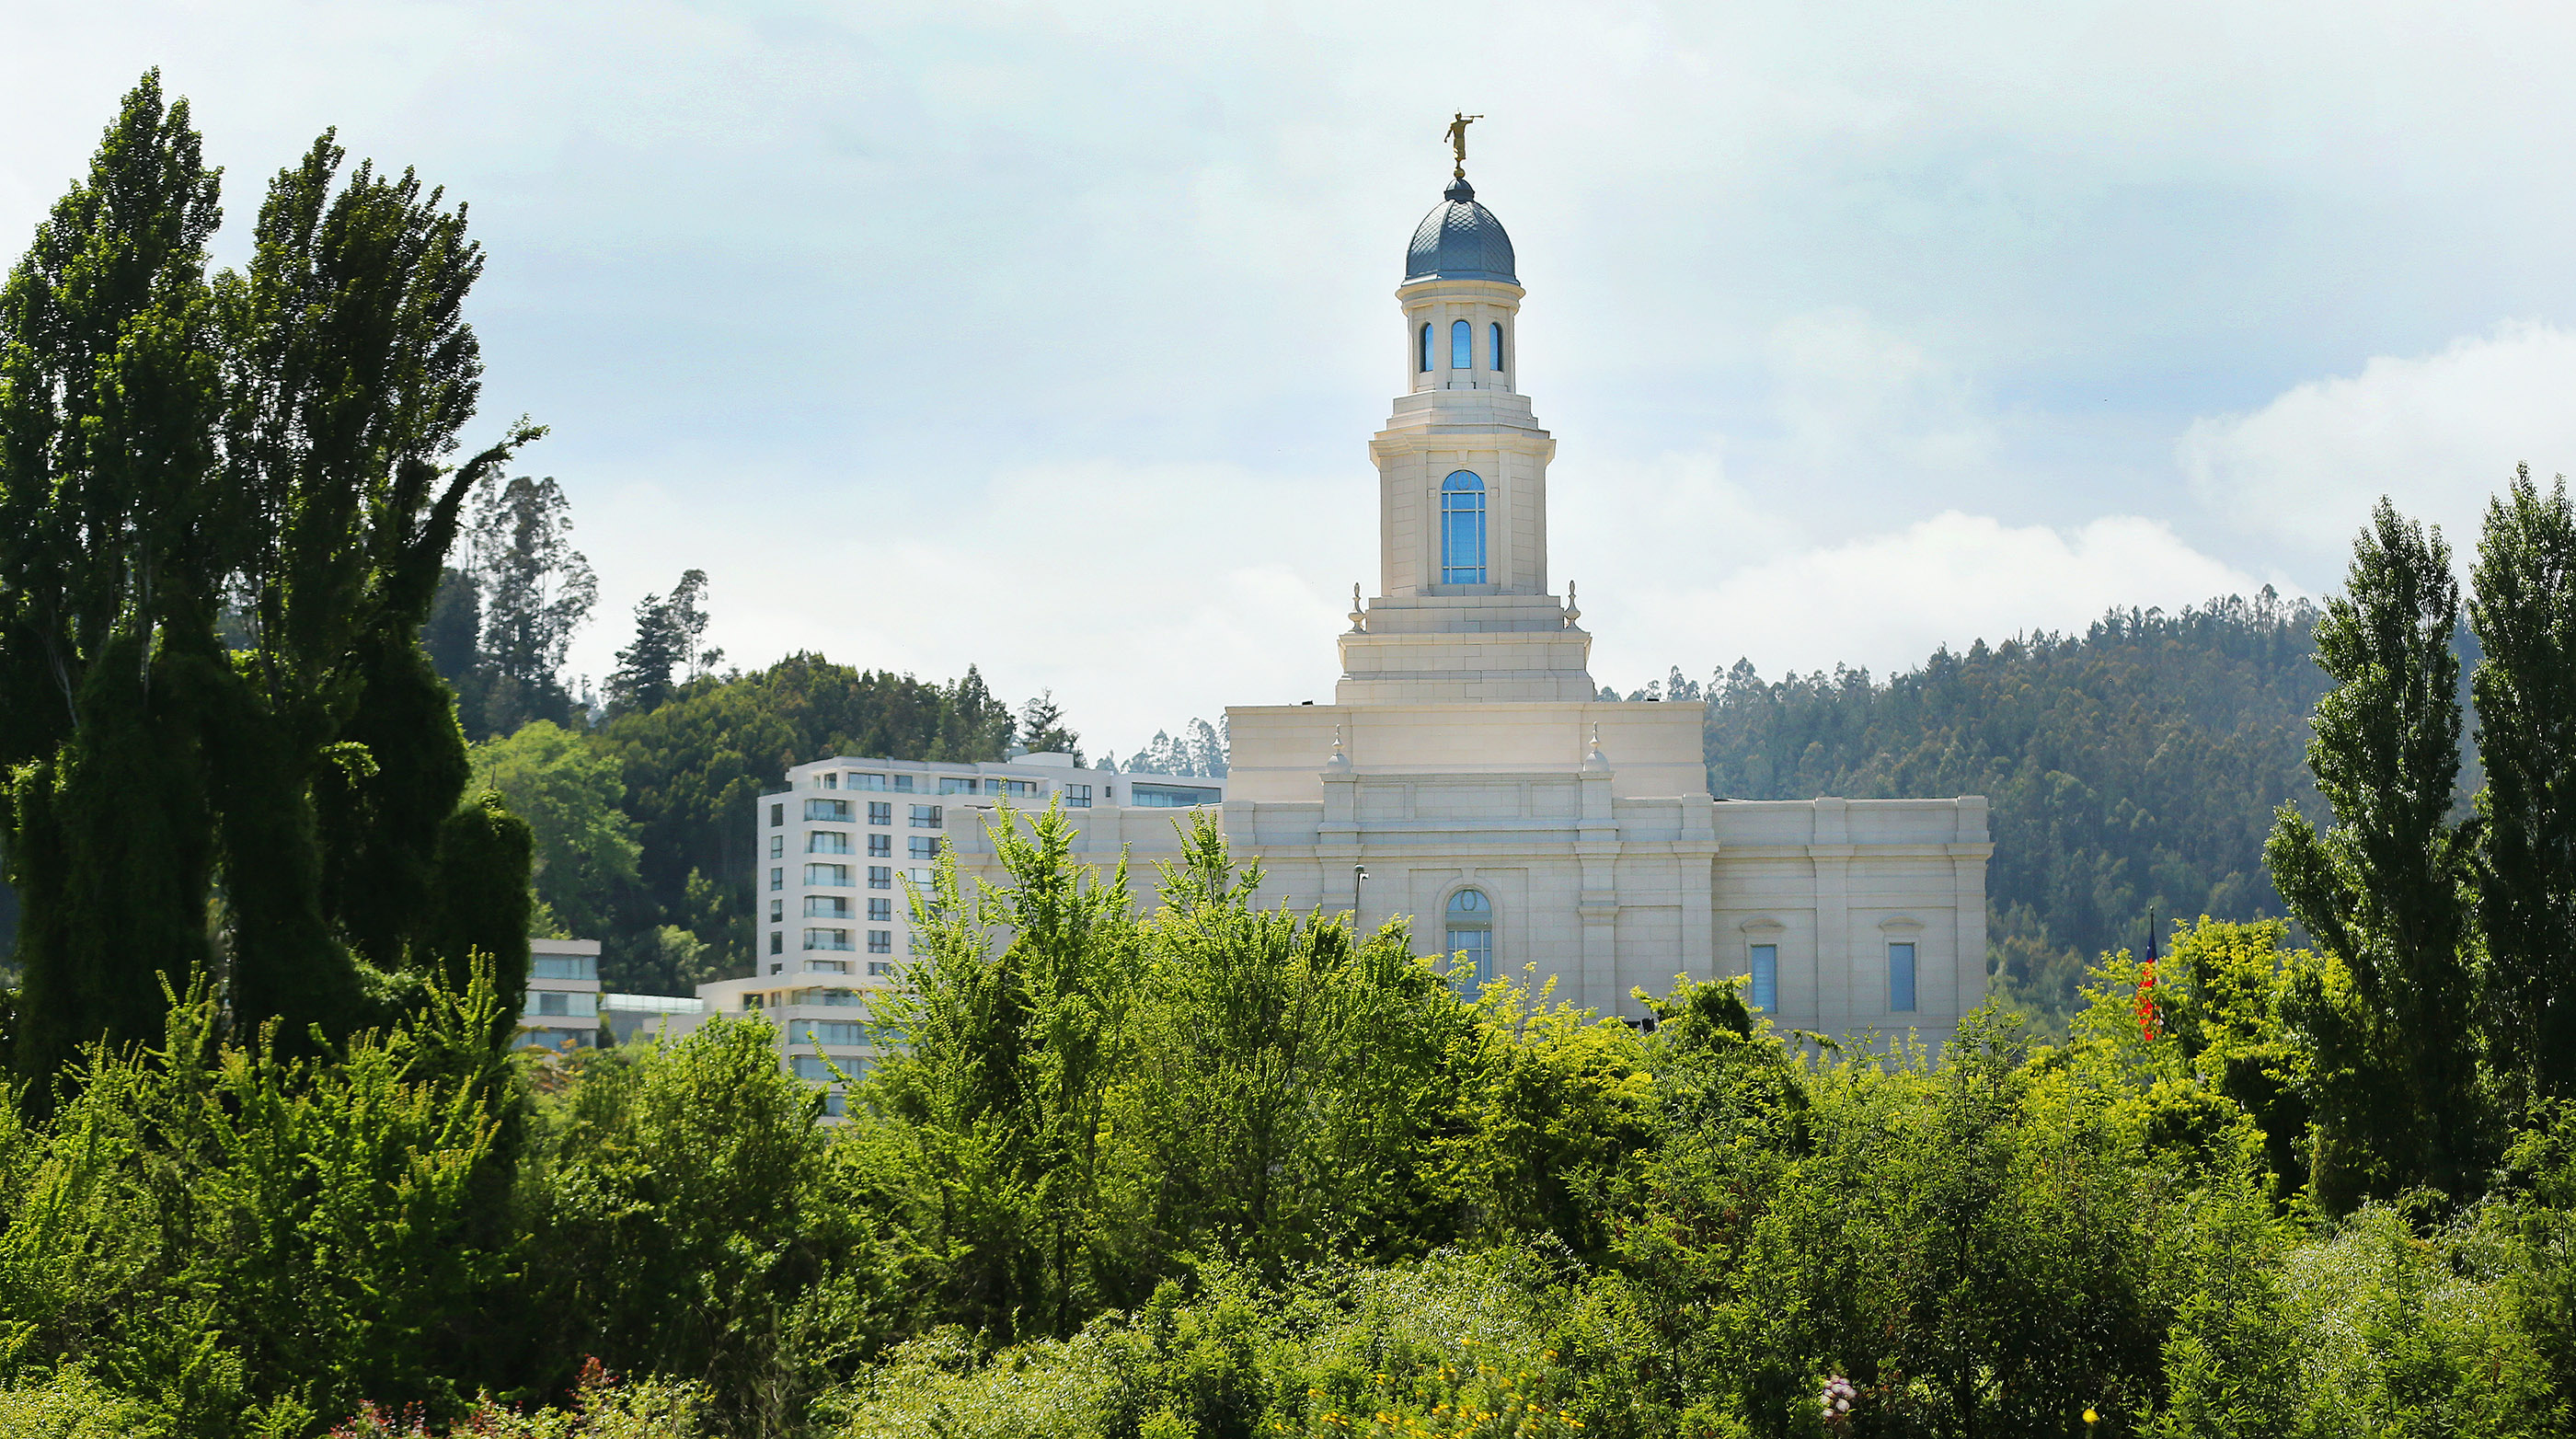 Preparations of completed for dedication of the LDS Temple in Concepcion, Chili on Saturday, Oct. 27, 2018.